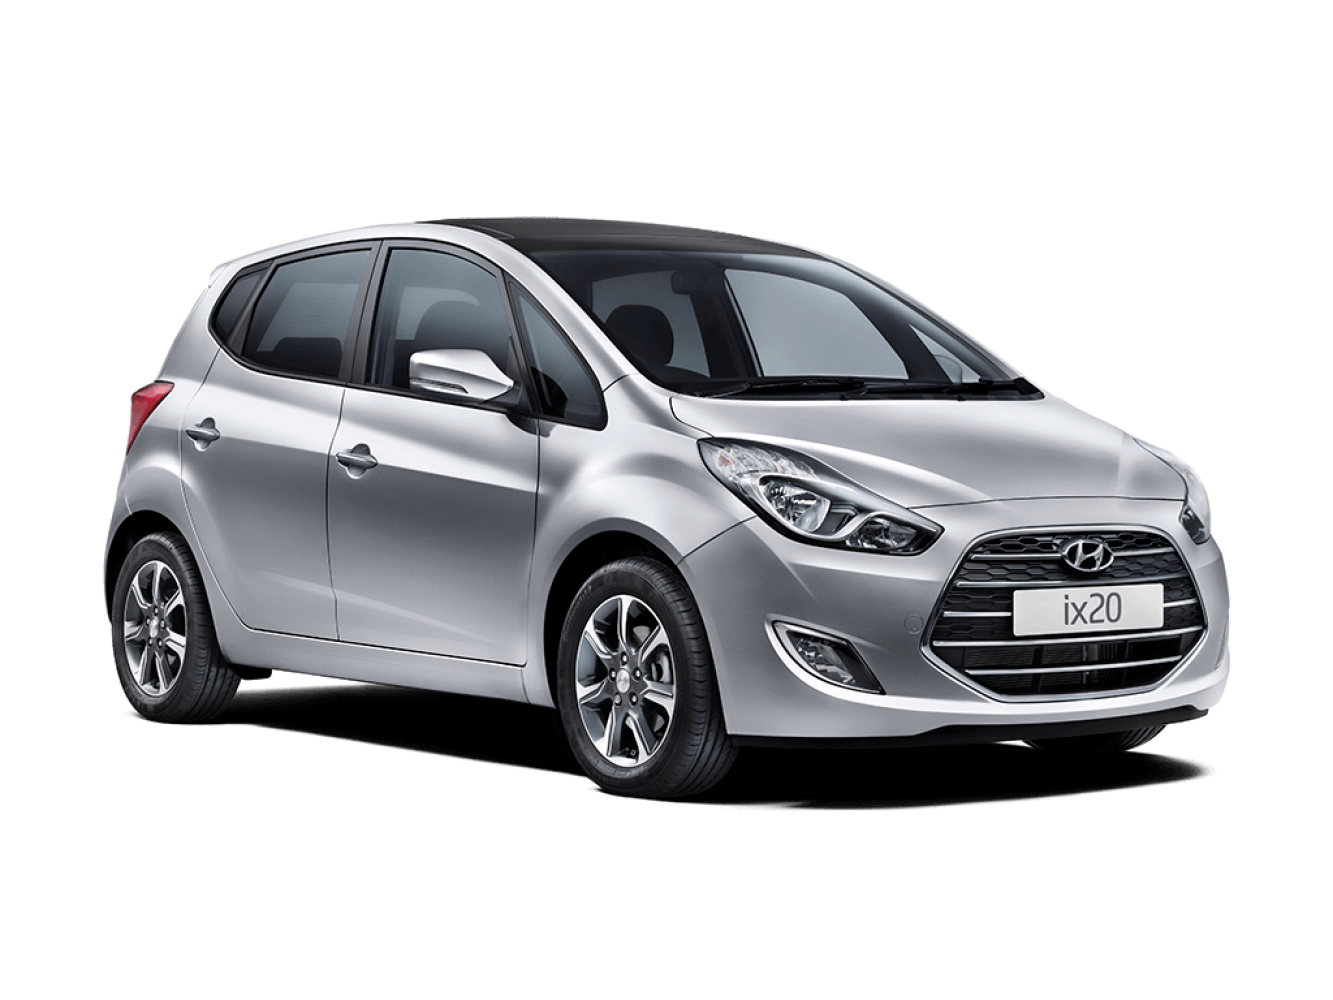 new hyundai ix20 1 6 premium nav 5dr auto petrol hatchback. Black Bedroom Furniture Sets. Home Design Ideas